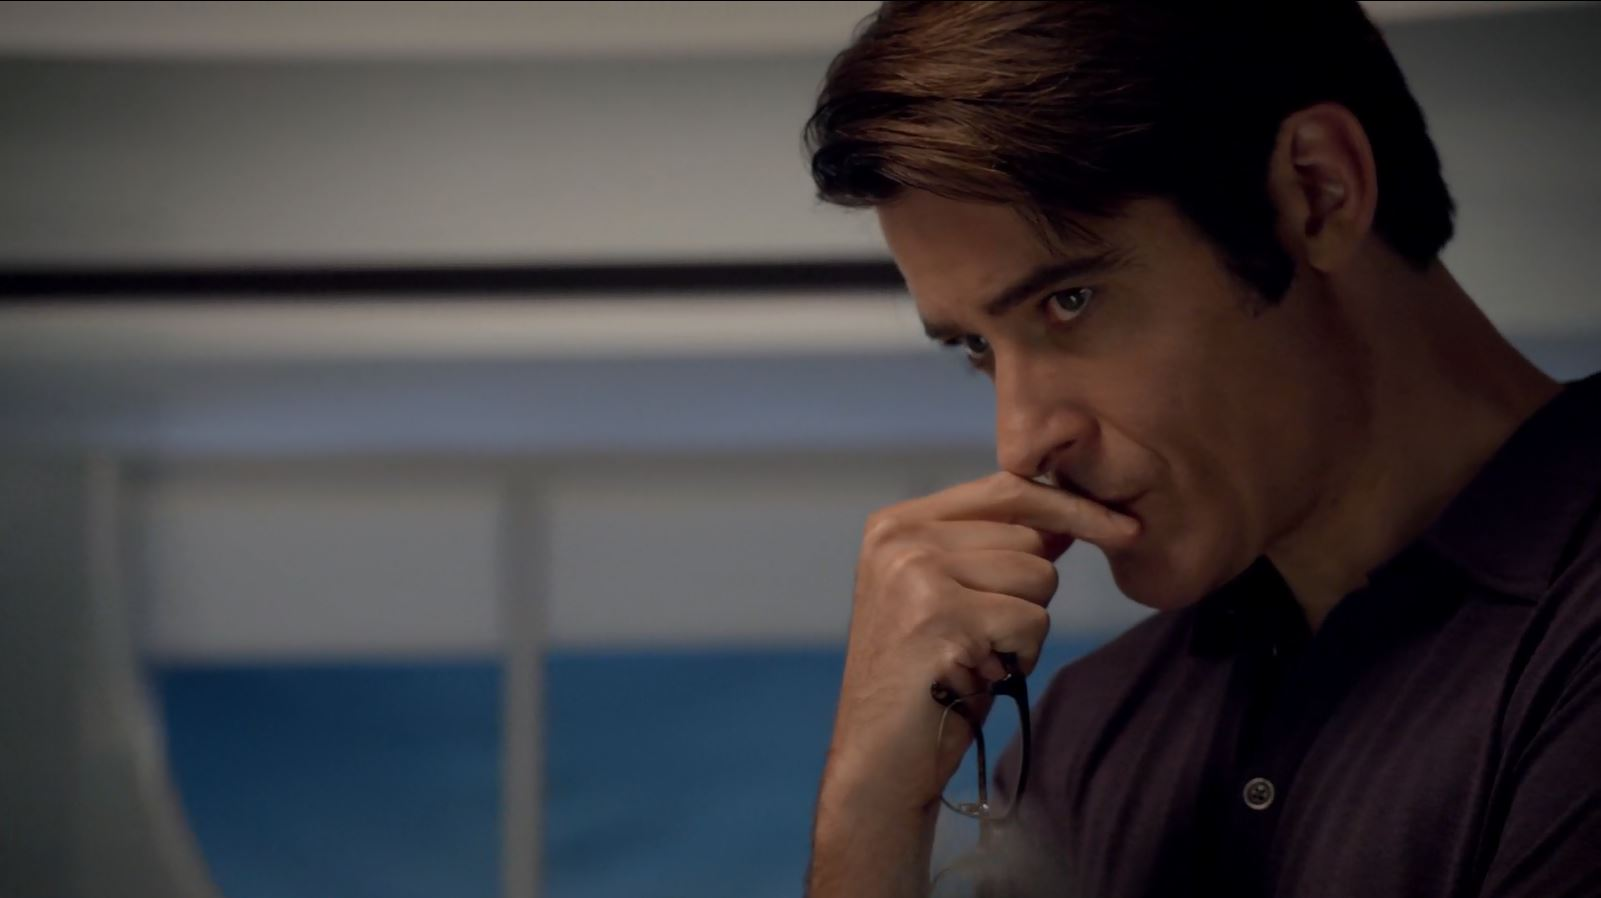 Extant season 1 finale review - John